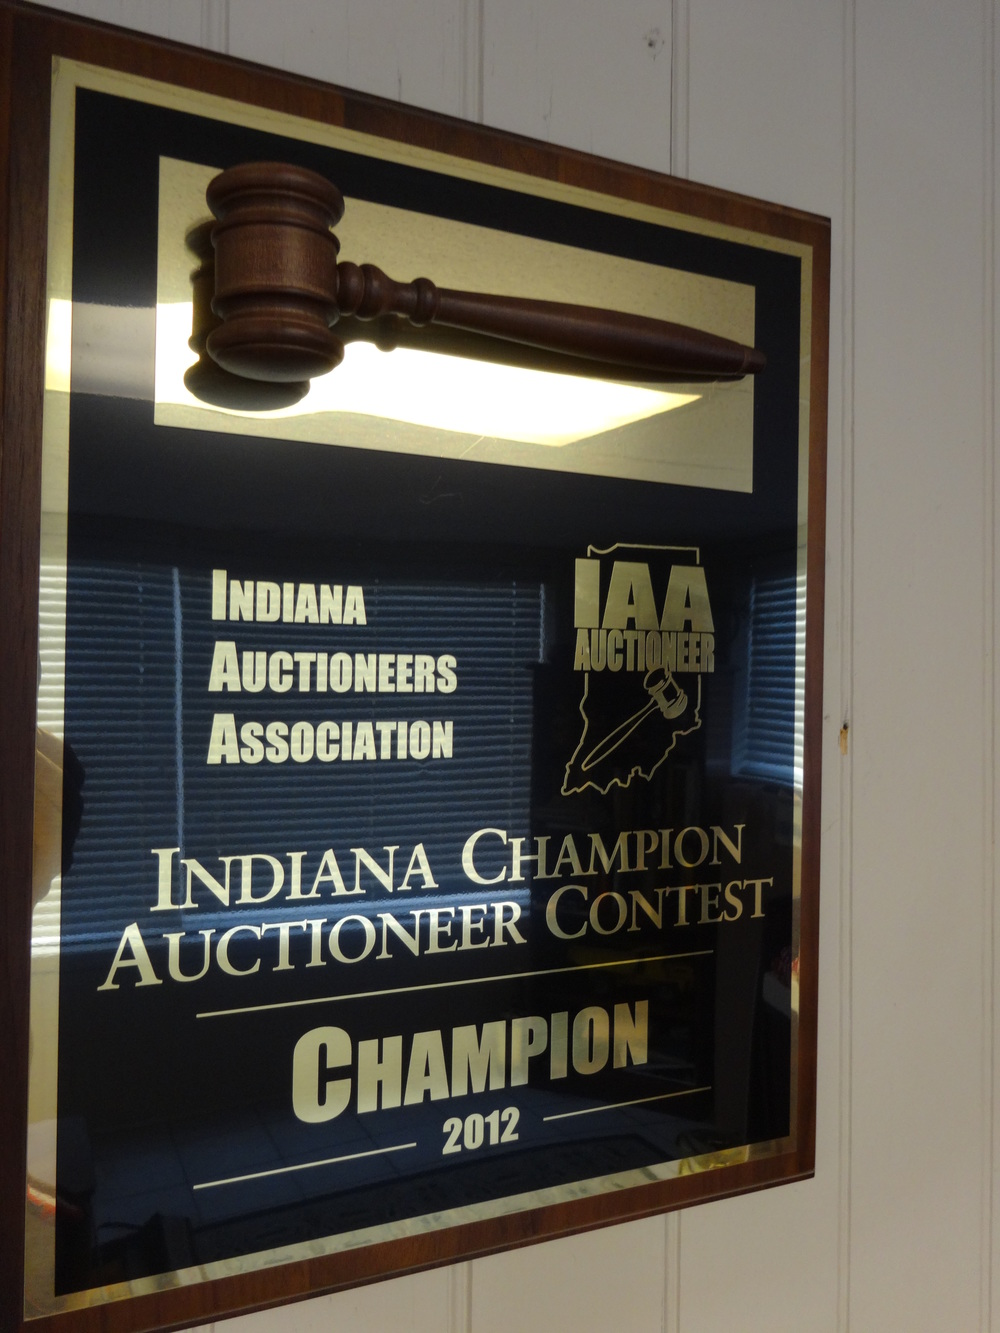 2012 Indiana Auctioneers Association Champion